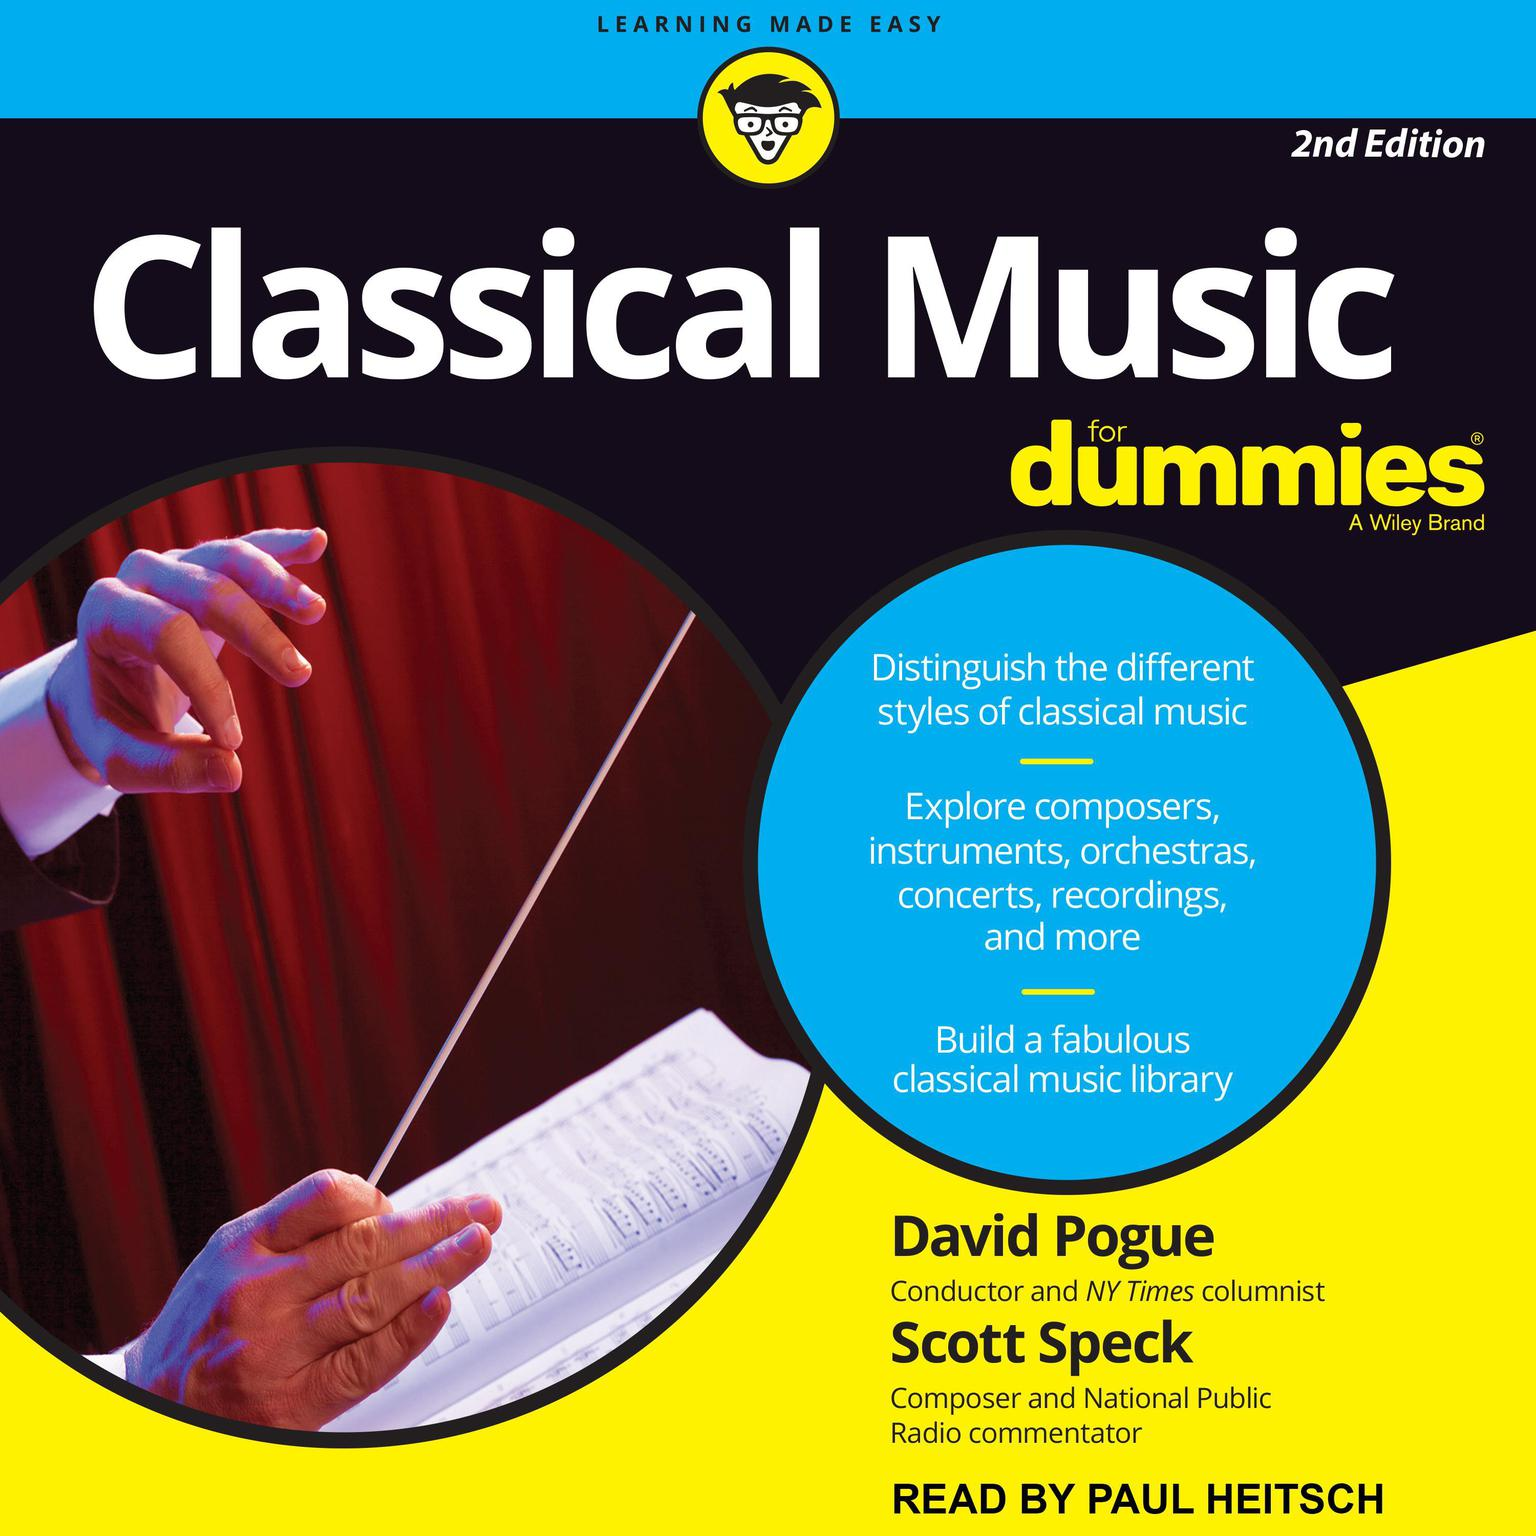 Classical Music For Dummies: 2nd Edition Audiobook, by David Pogue